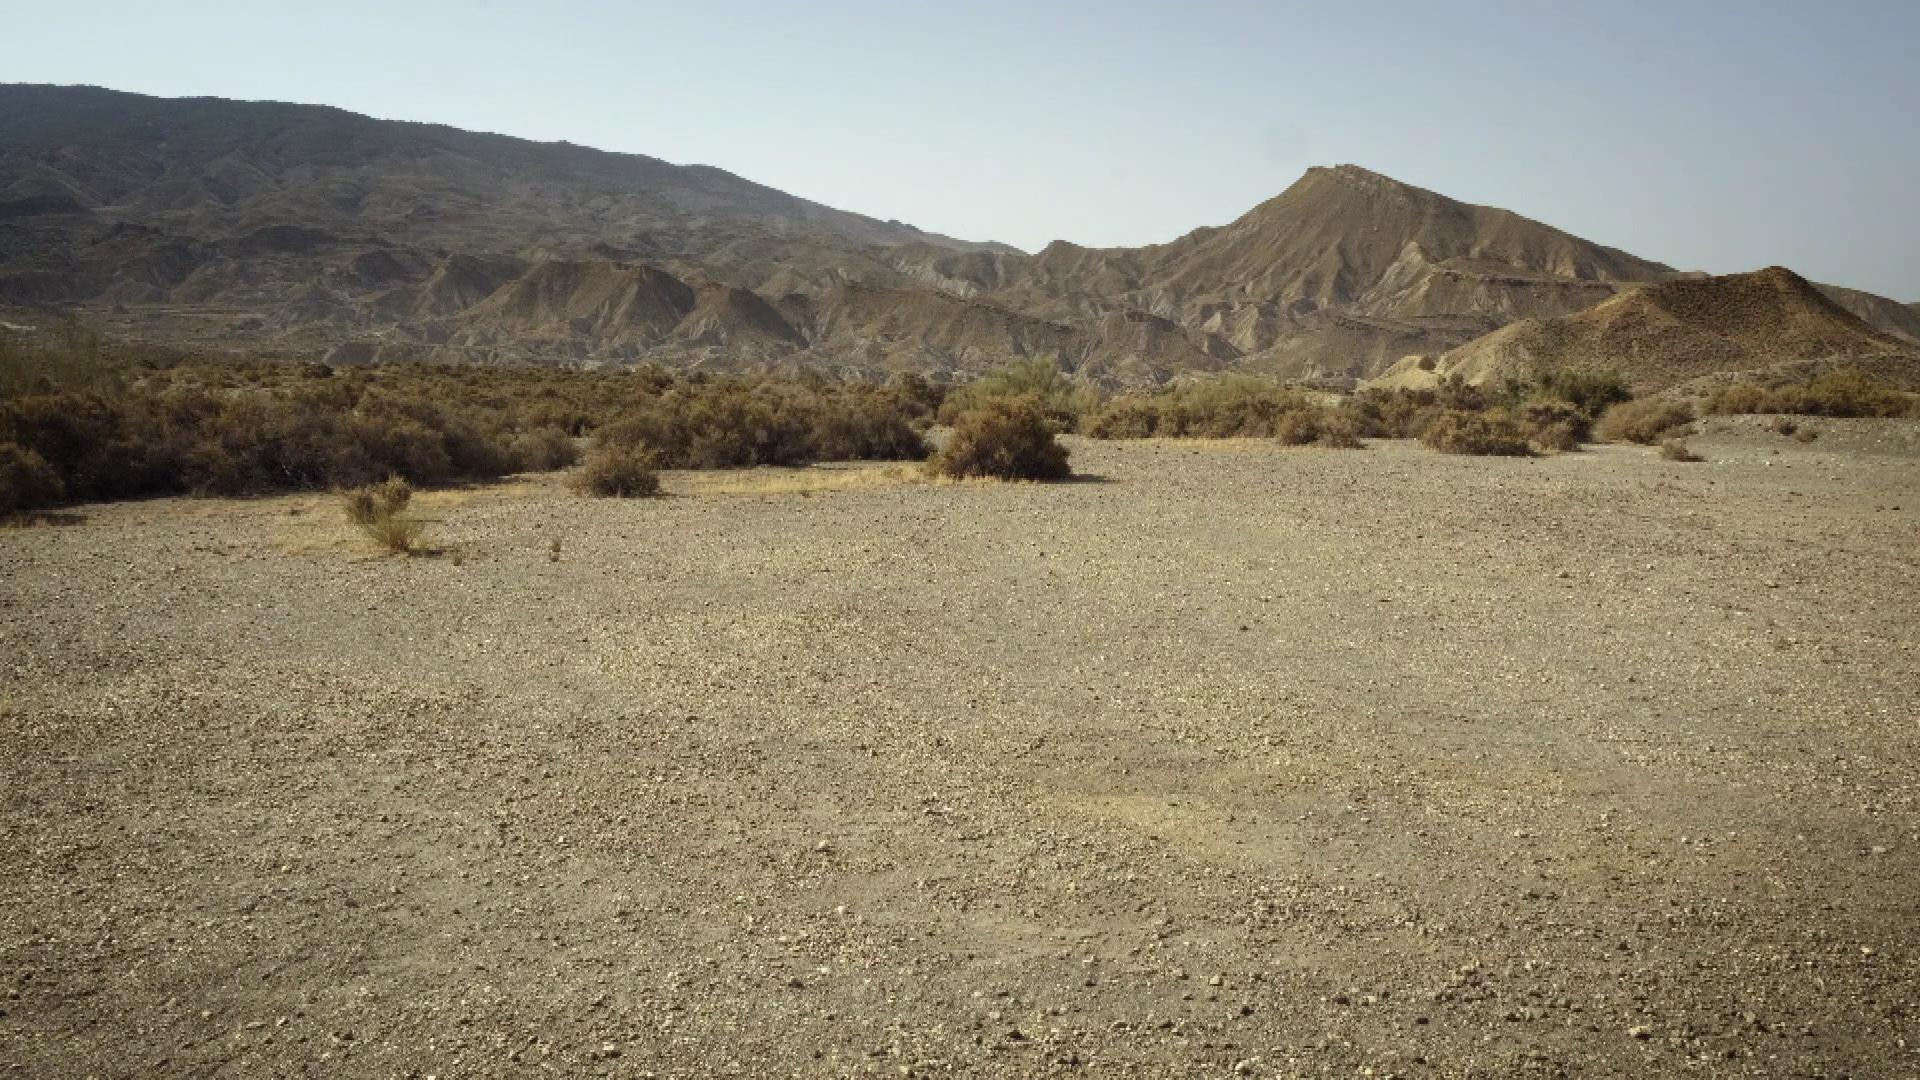 Short Films Mute: Dust Devil